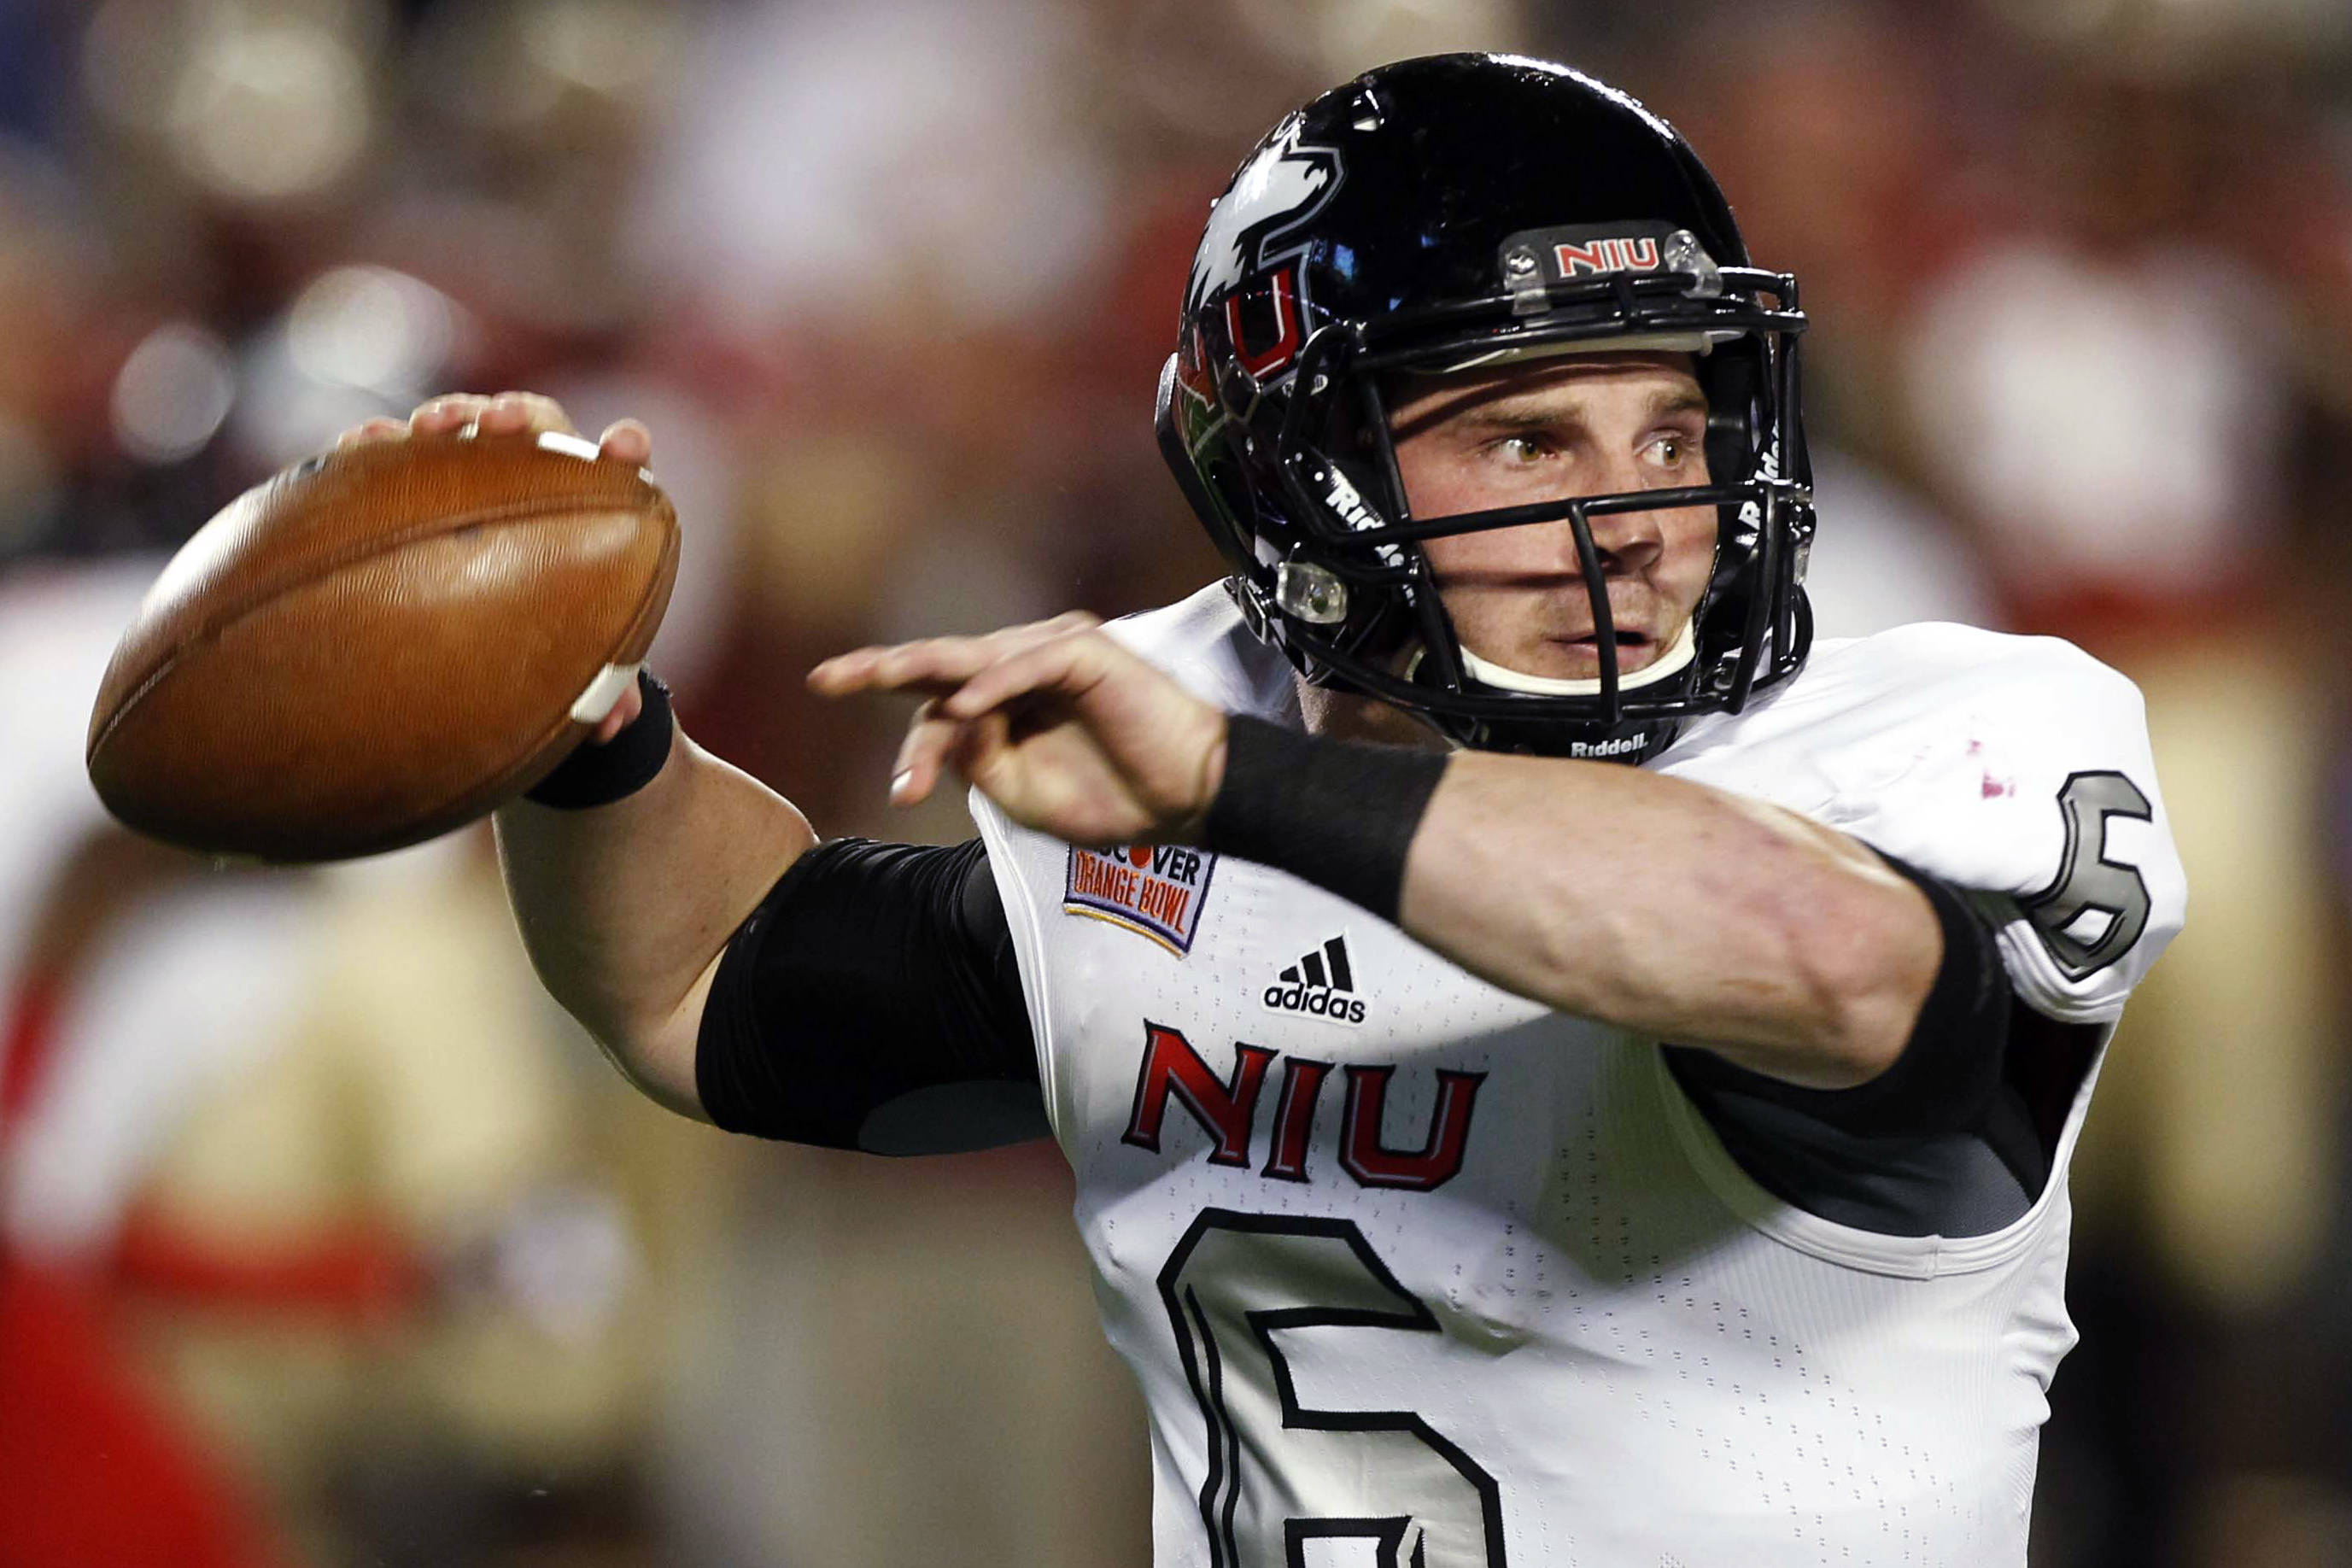 Northern Illinois quarterback Jordan Lynch (6) looks to pass during the first half of the Orange Bowl NCAA college football game against Florida State, Tuesday, Jan. 1, 2013, in Miami. (AP Photo/Alan Diaz)